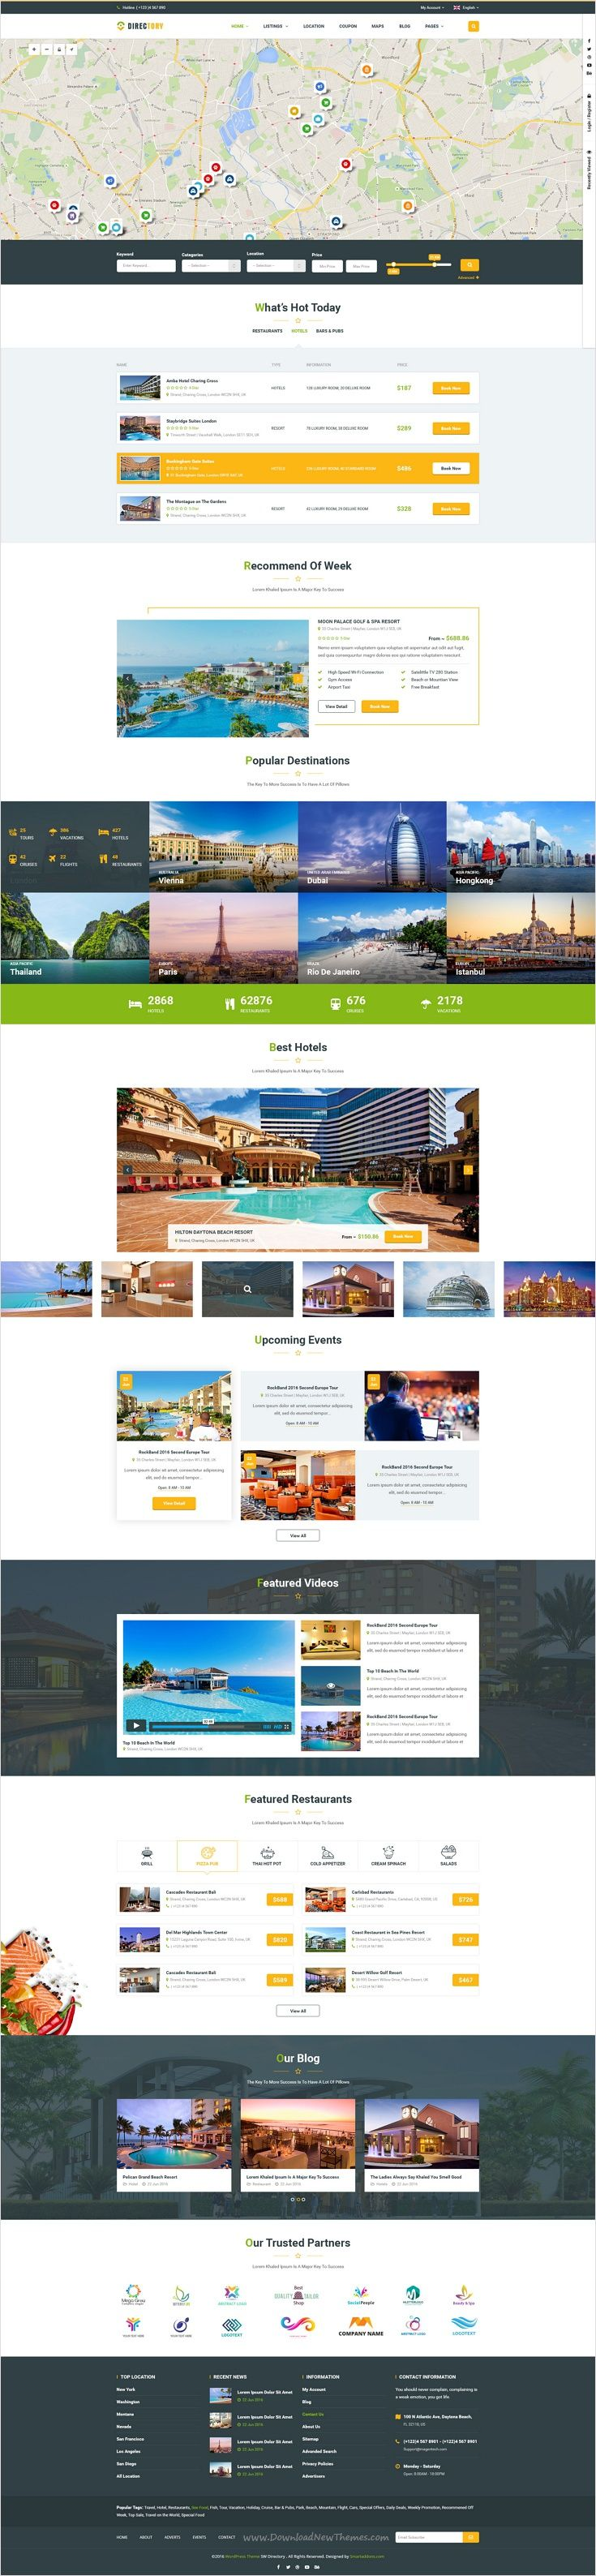 Directory is a modern & creative design #directory listing #PSD #template for #hotel, restaurant, real estate company, education website with 5 unique homepage layouts and 23 organized PSD pages download now➩ https://themeforest.net/item/directory-directory-and-listings-psd-template/17499533?ref=Datasata